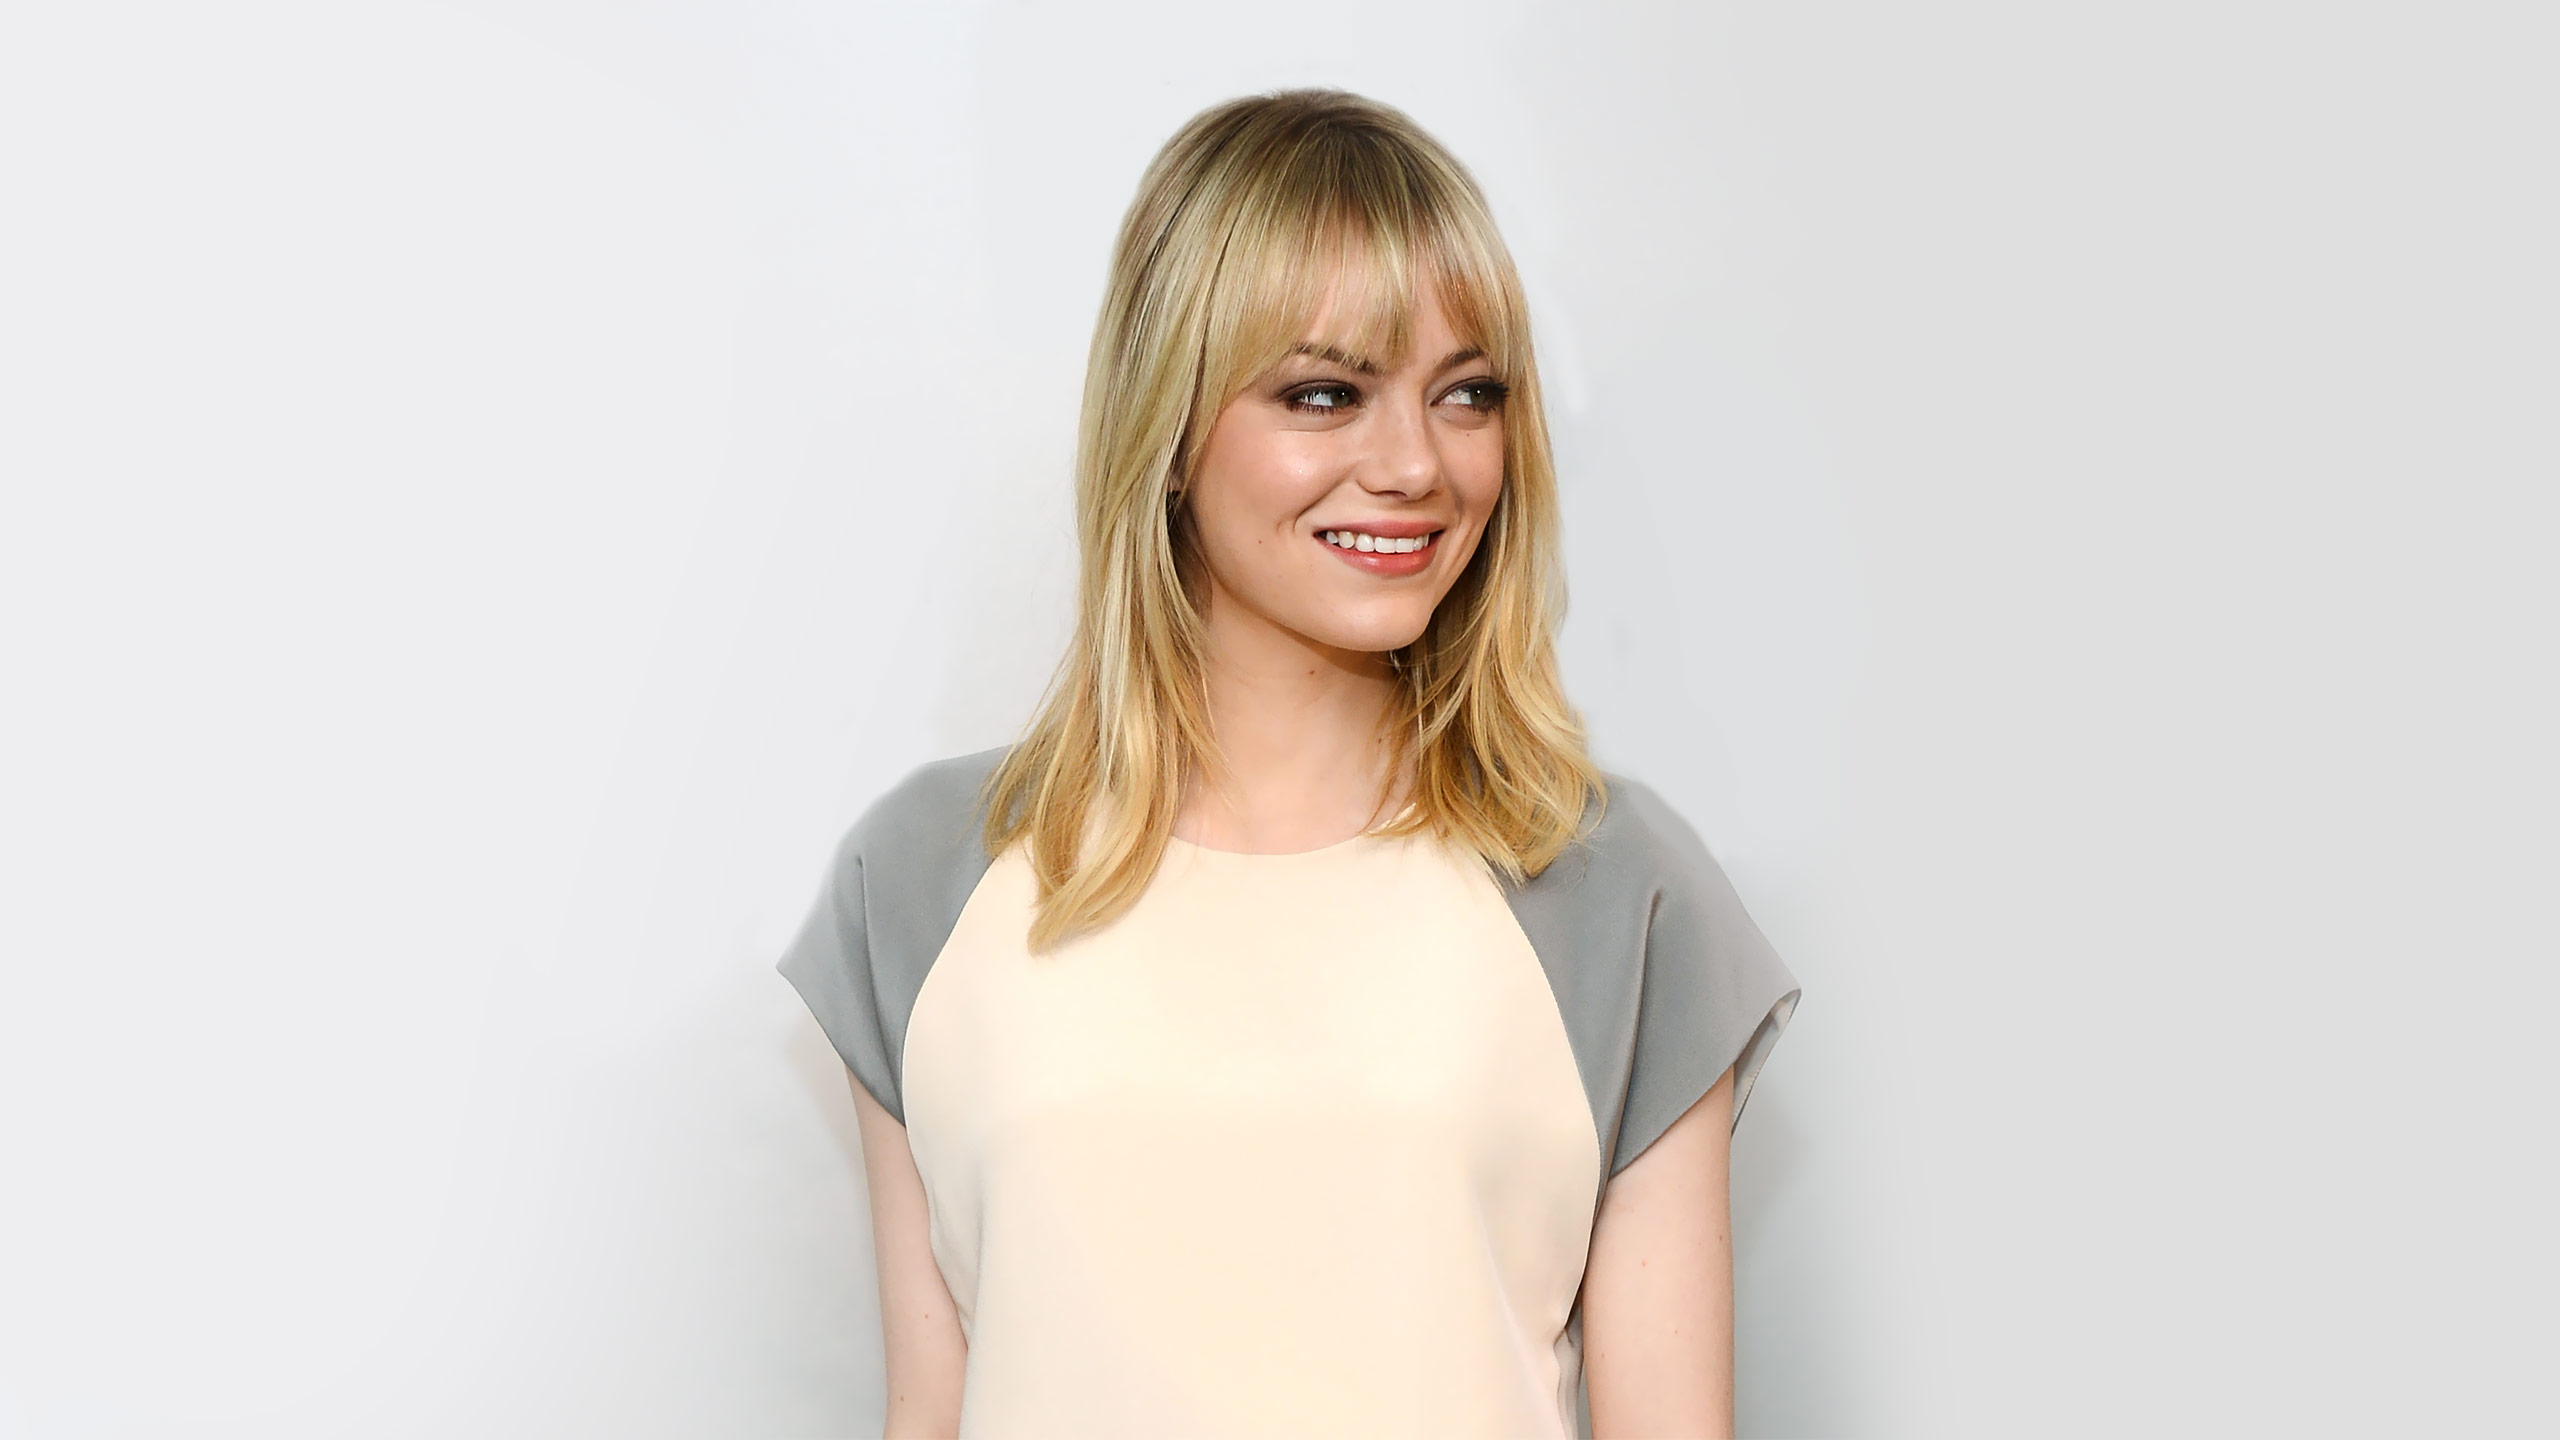 emma stone 4k widescreen desktop wallpaper 1383